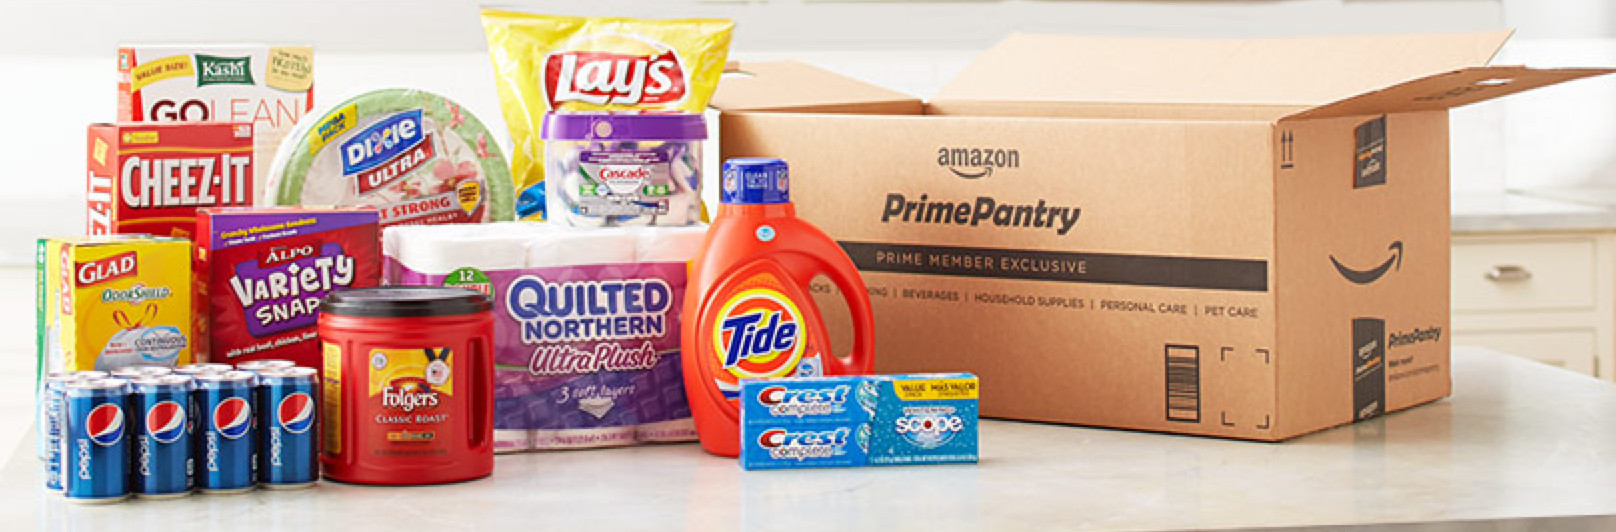 Best ideas about Amazon Pantry Free Shipping . Save or Pin Free Shipping from Amazon Pantry Now.